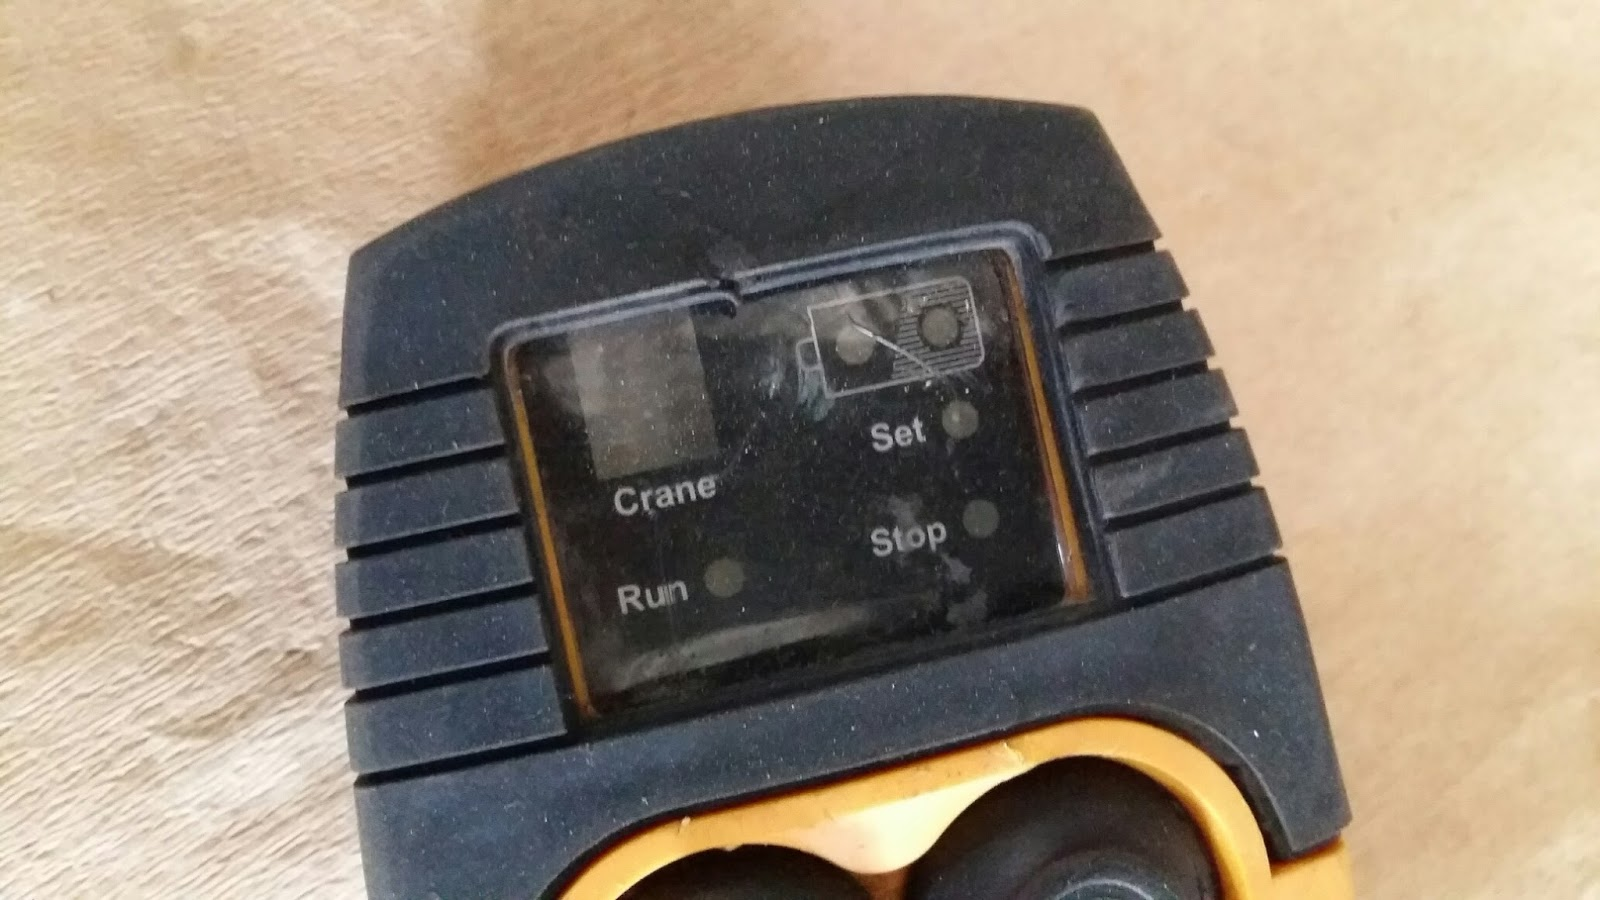 hight resolution of demag drc dc10 radio remote control type drc dc 10 ident no 773 700 44 serial no 051436 ip 55 made in gmbh condition used 1 pcs